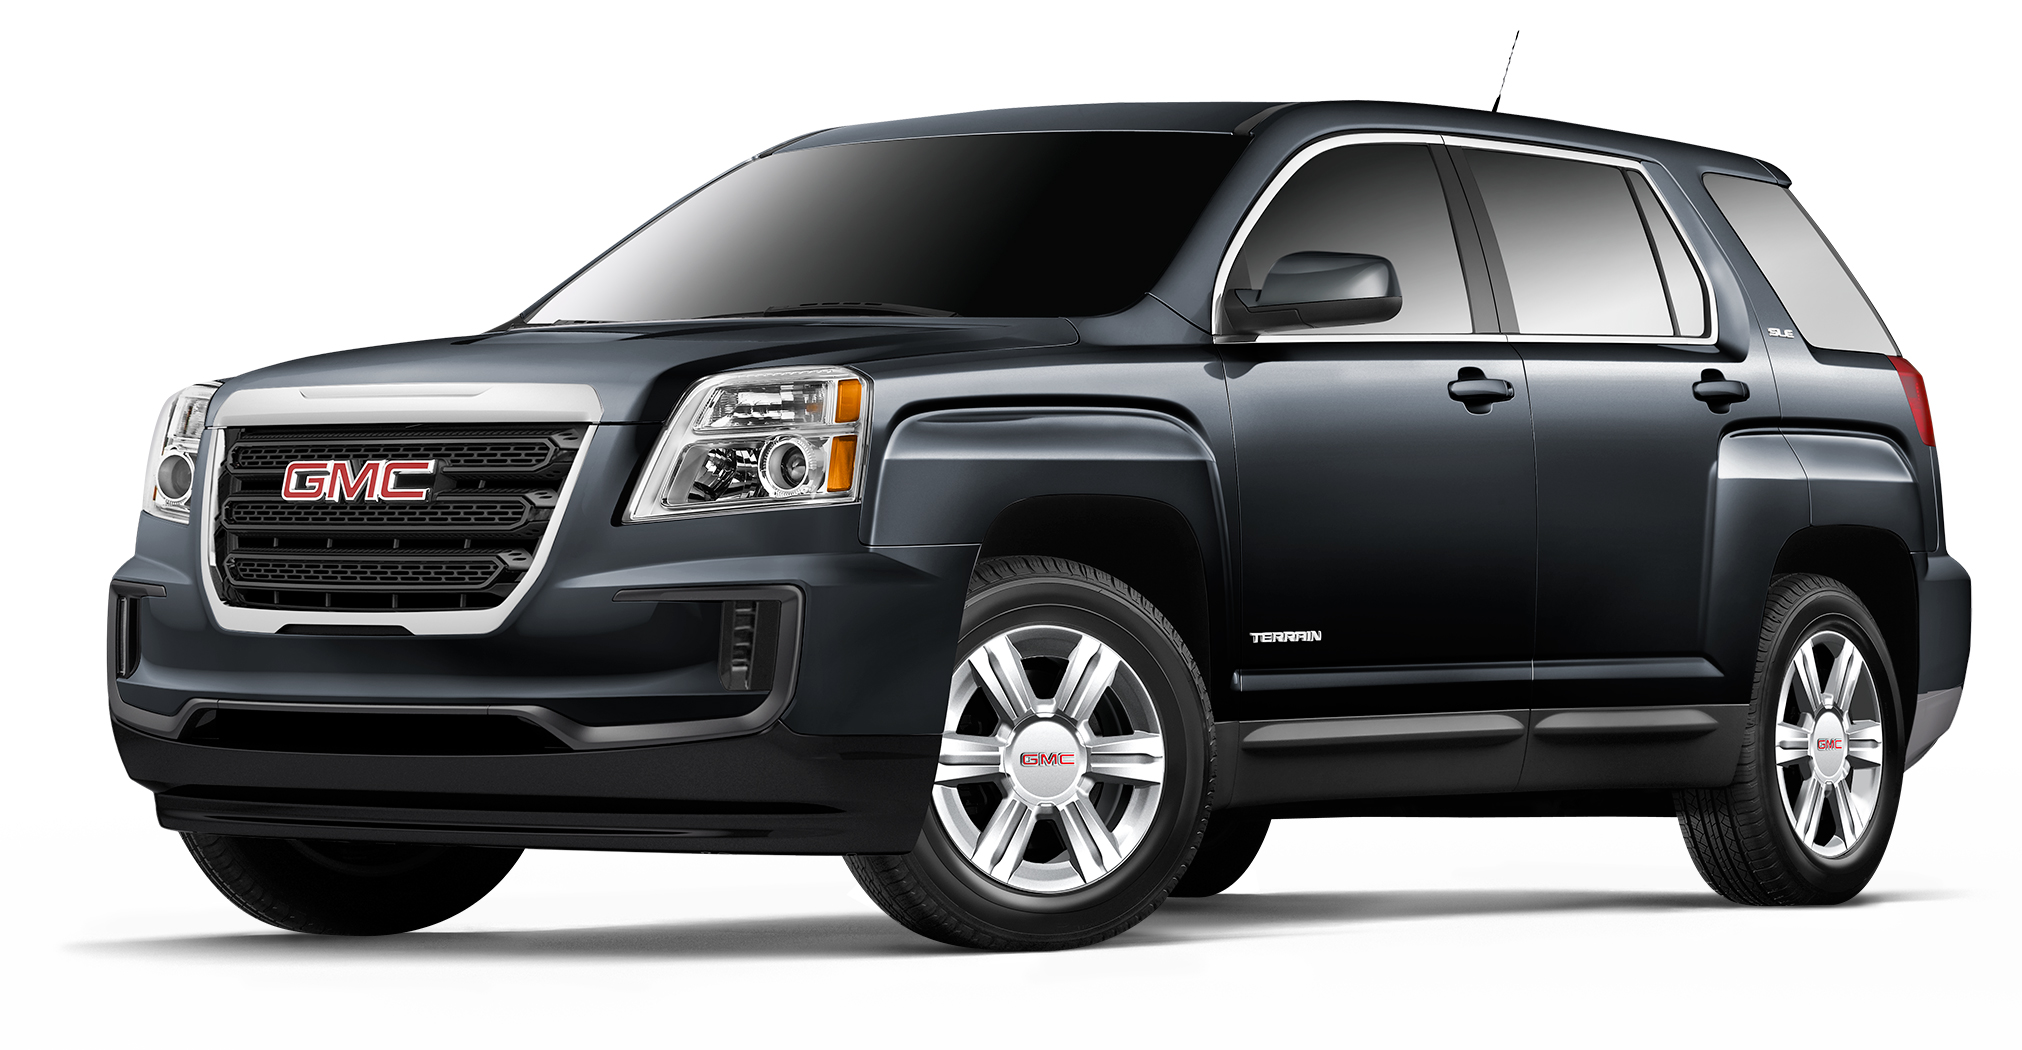 2017 gmc terrain winnipeg gmc terrain details specs gauthier. Black Bedroom Furniture Sets. Home Design Ideas